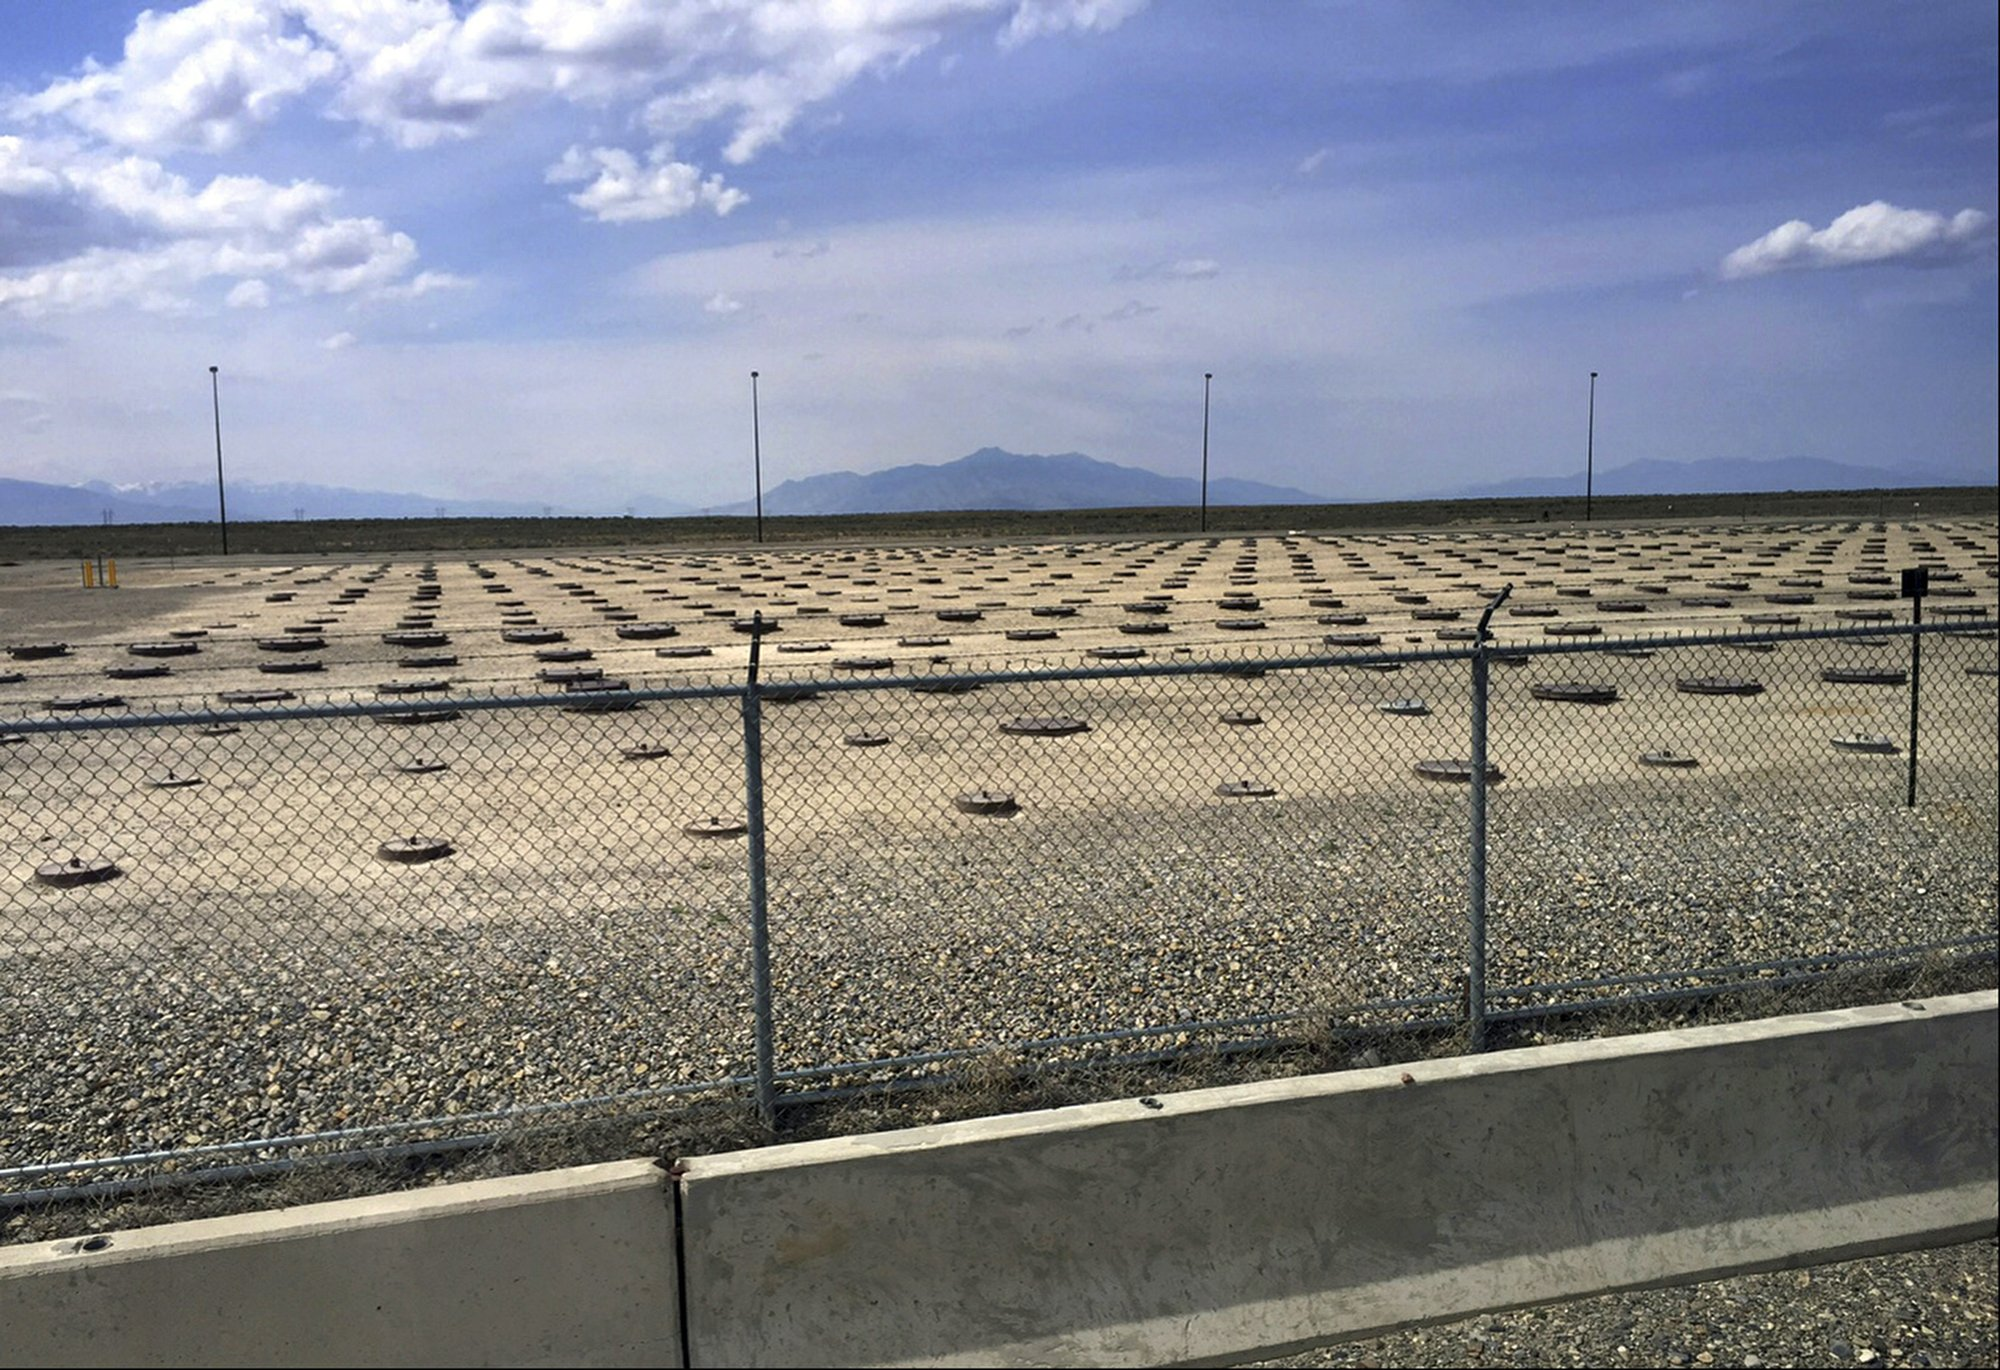 Nuclear weapons waste shipped from Idaho to New Mexico